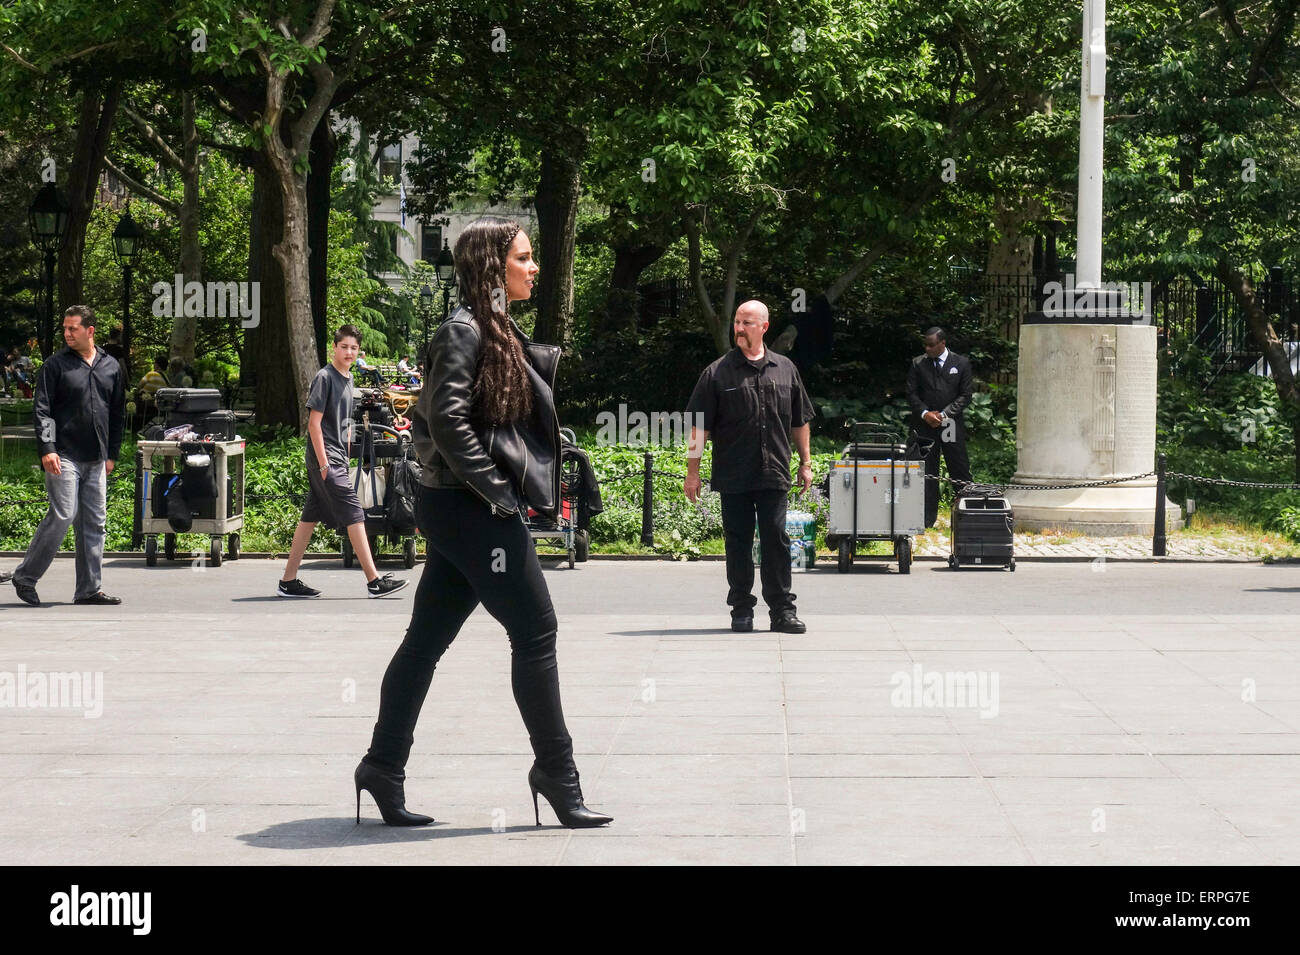 28 May 2015, Alicia Keys shows up to shoot a commercial, advertisement, in Washington Park, New York, USA - Stock Image